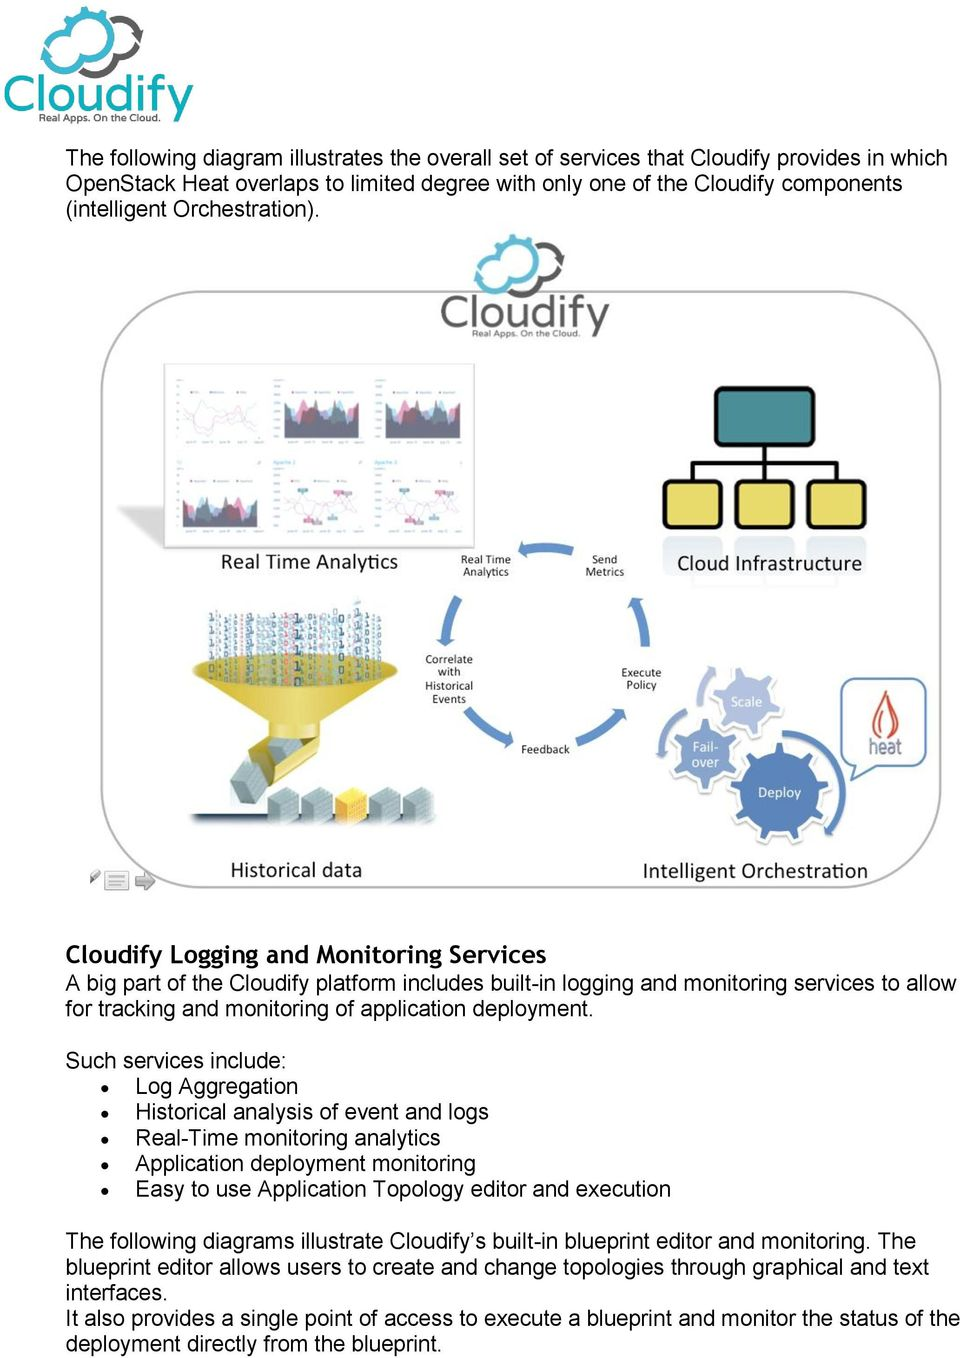 Cloudify Logging and Monitoring Services A big part of the Cloudify platform includes built-in logging and monitoring services to allow for tracking and monitoring of application deployment.